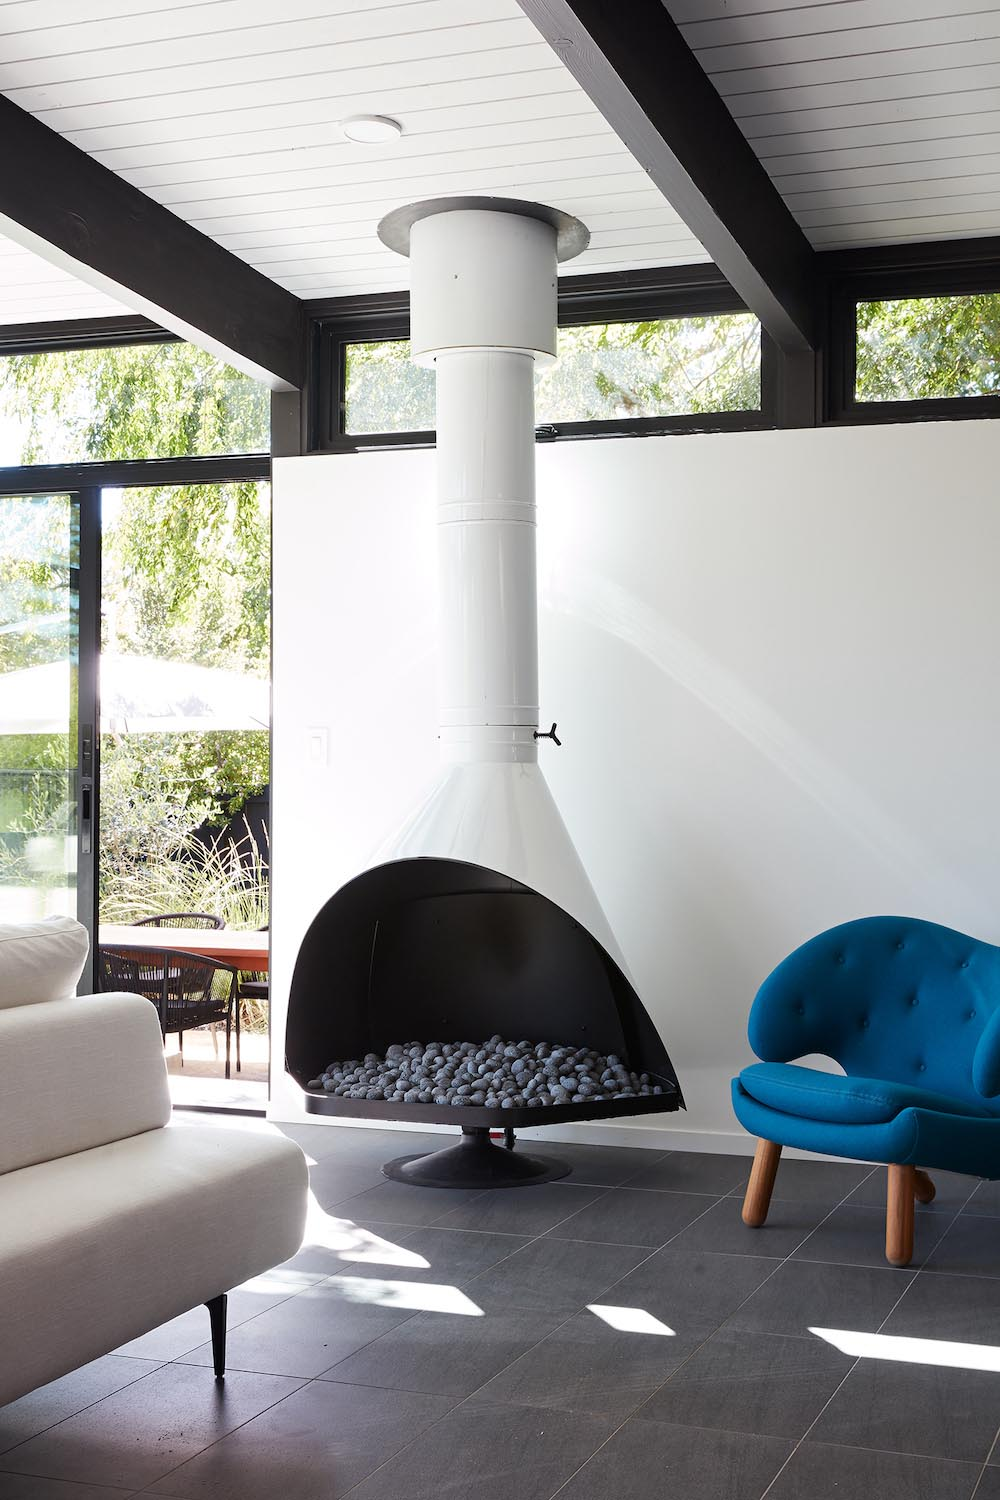 A remodeled living room with a Malm fireplace, black accents, and white walls.